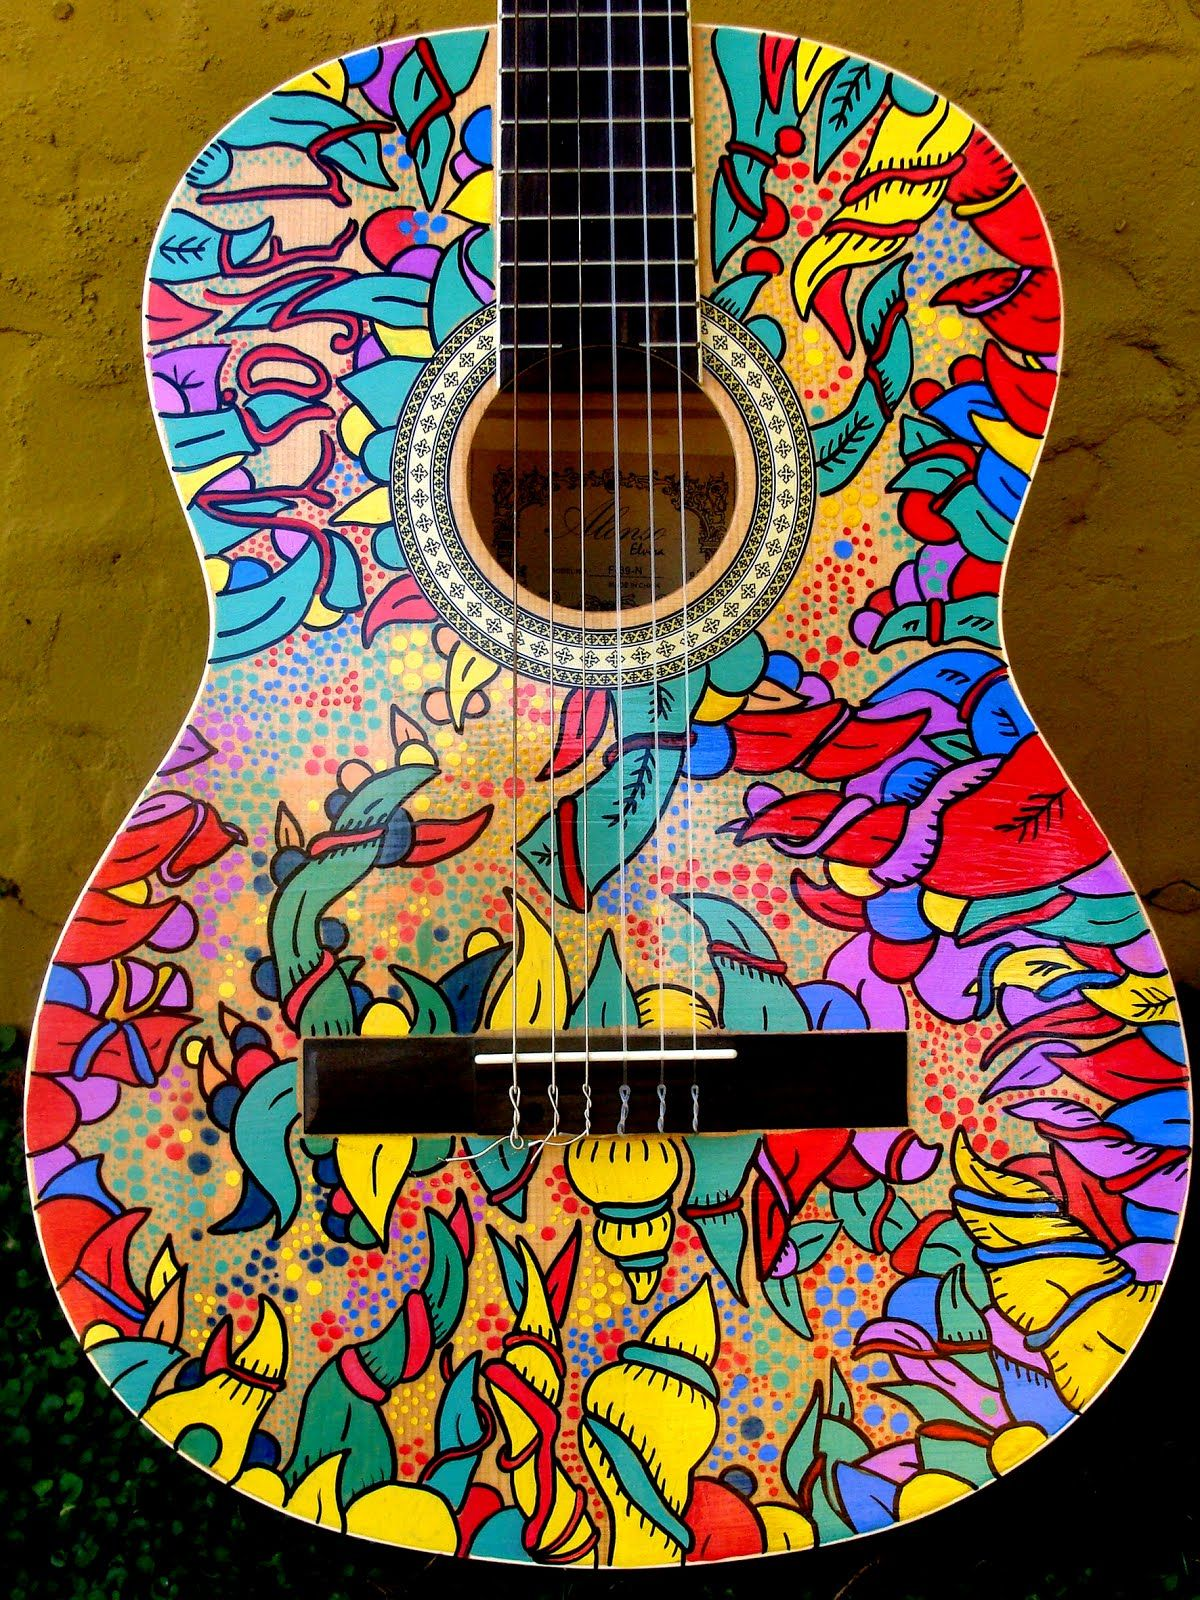 Guitarras Decoradas Pin De Atreyu En Cosas Varias Pinterest Guitar